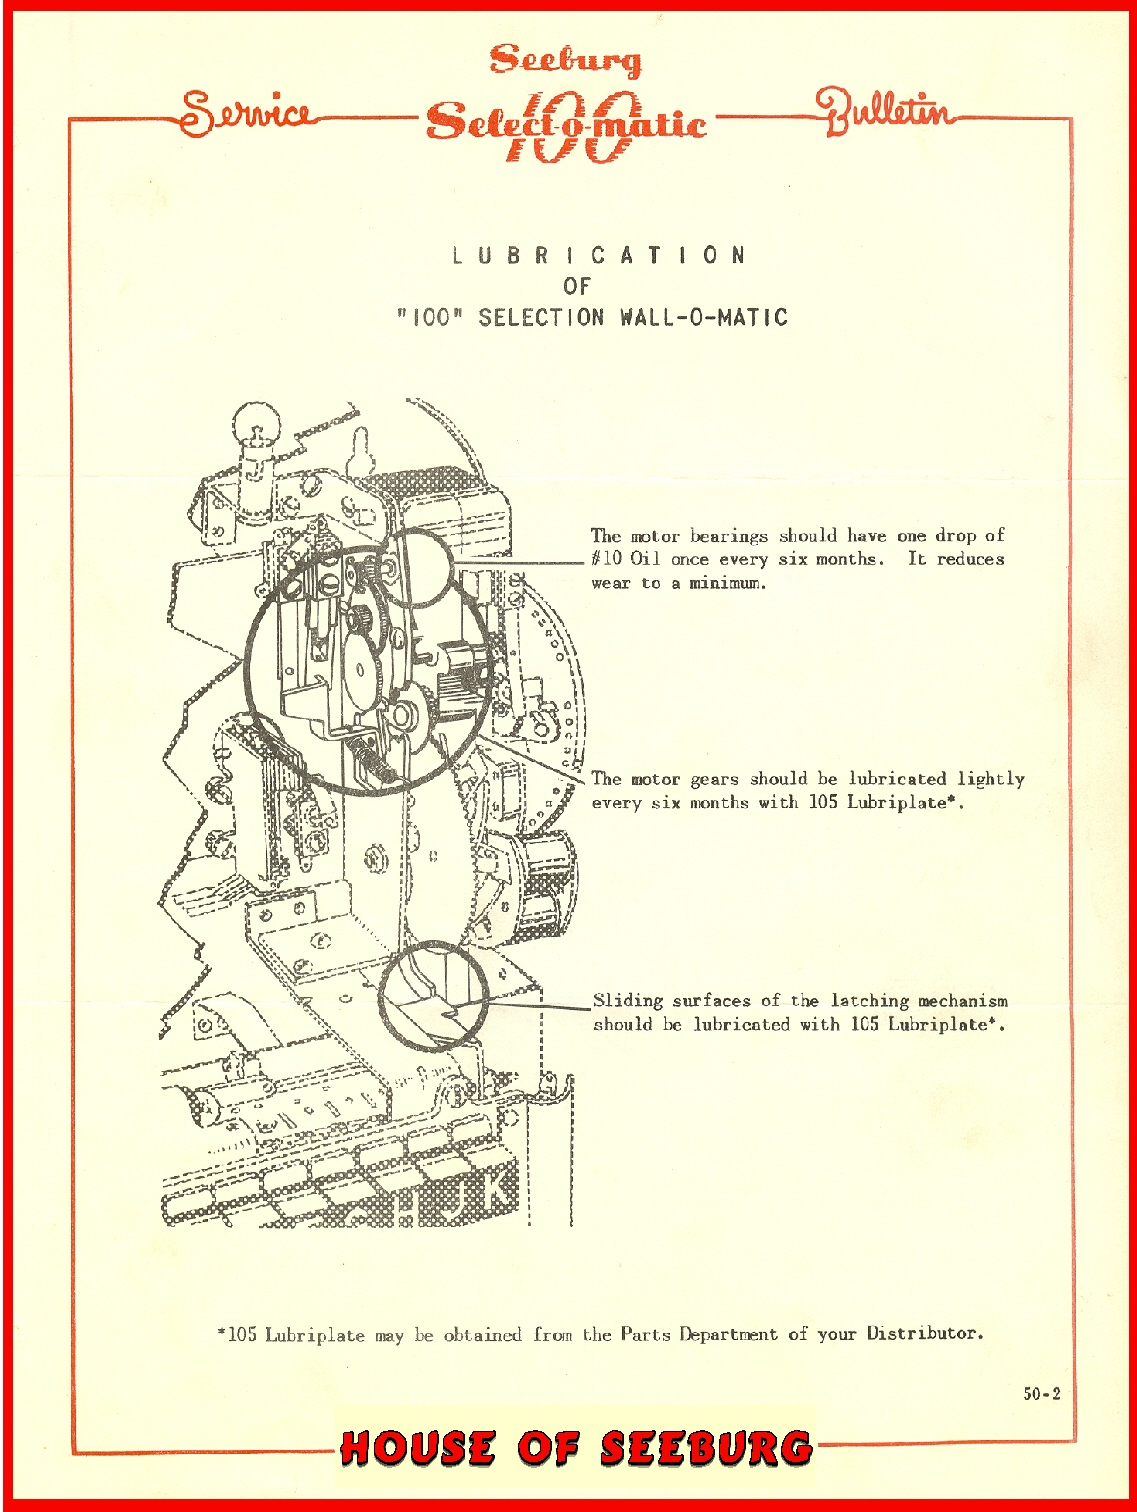 1h. Seeburg Wall_O-Matic Lubricatio.jpg